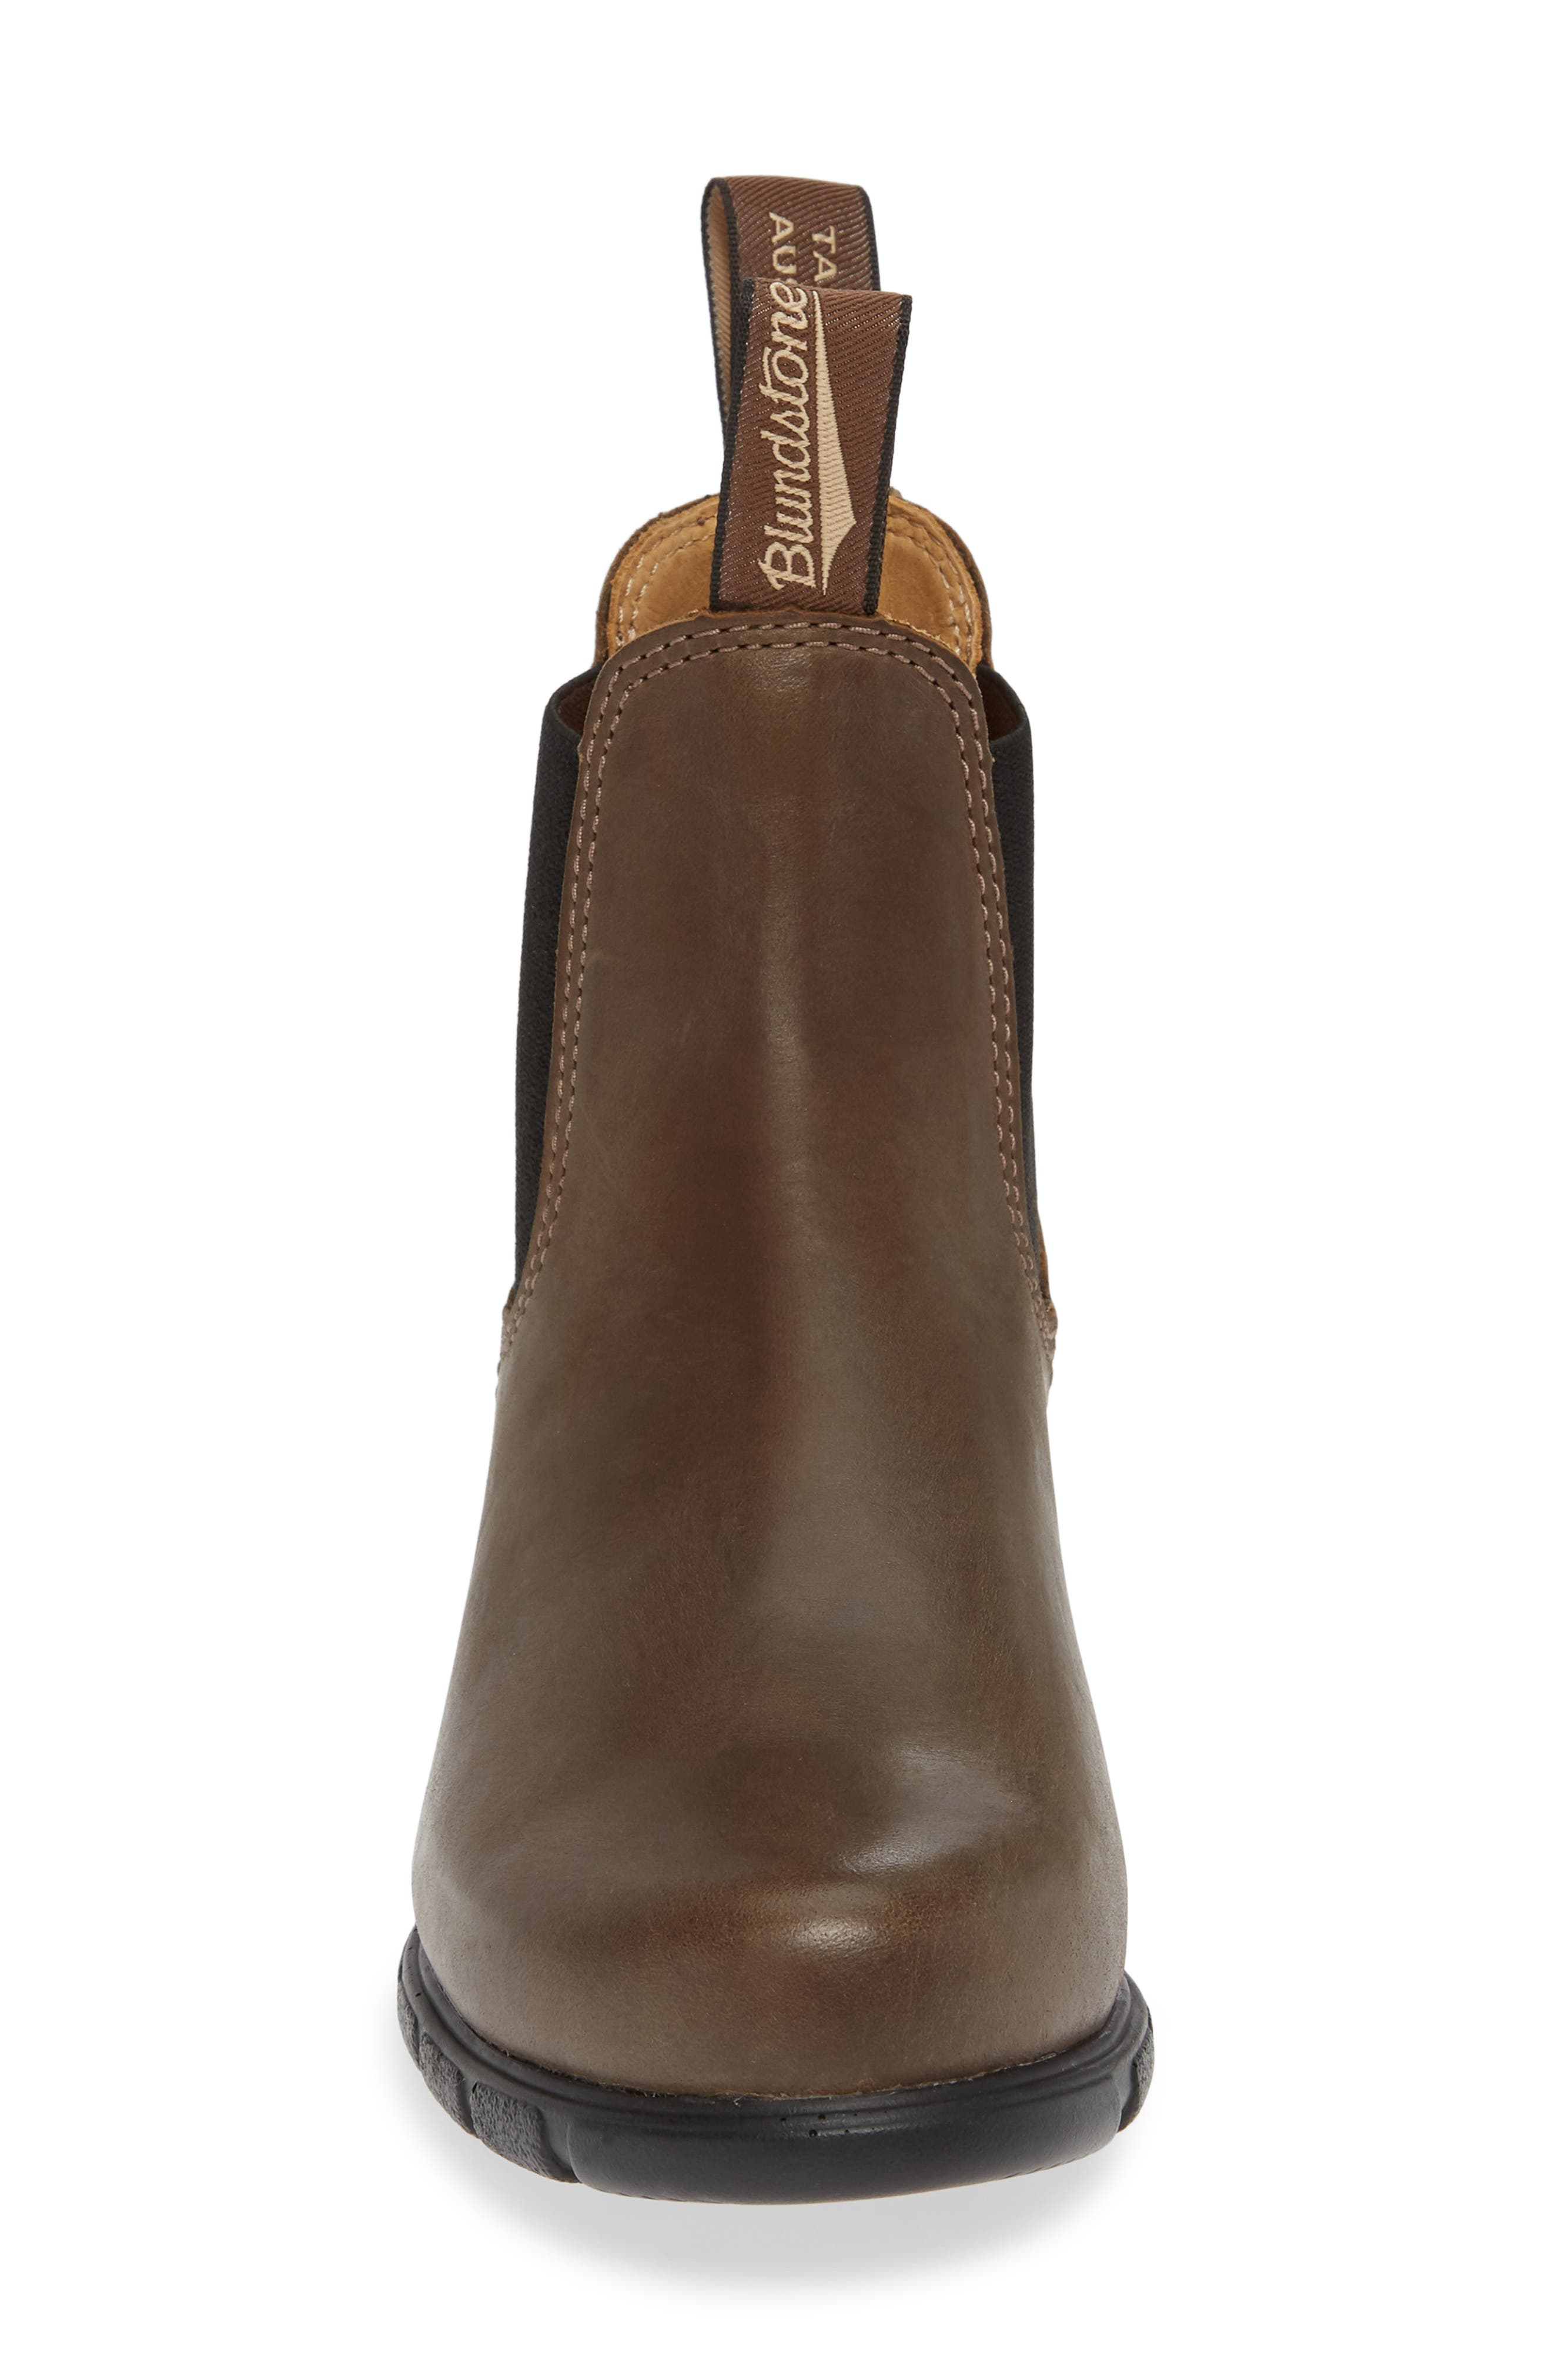 BLUNDSTONE FOOTWEAR, Blundstone 1671 Chelsea Boot, Alternate thumbnail 4, color, ANTIQUE TAUPE LEATHER